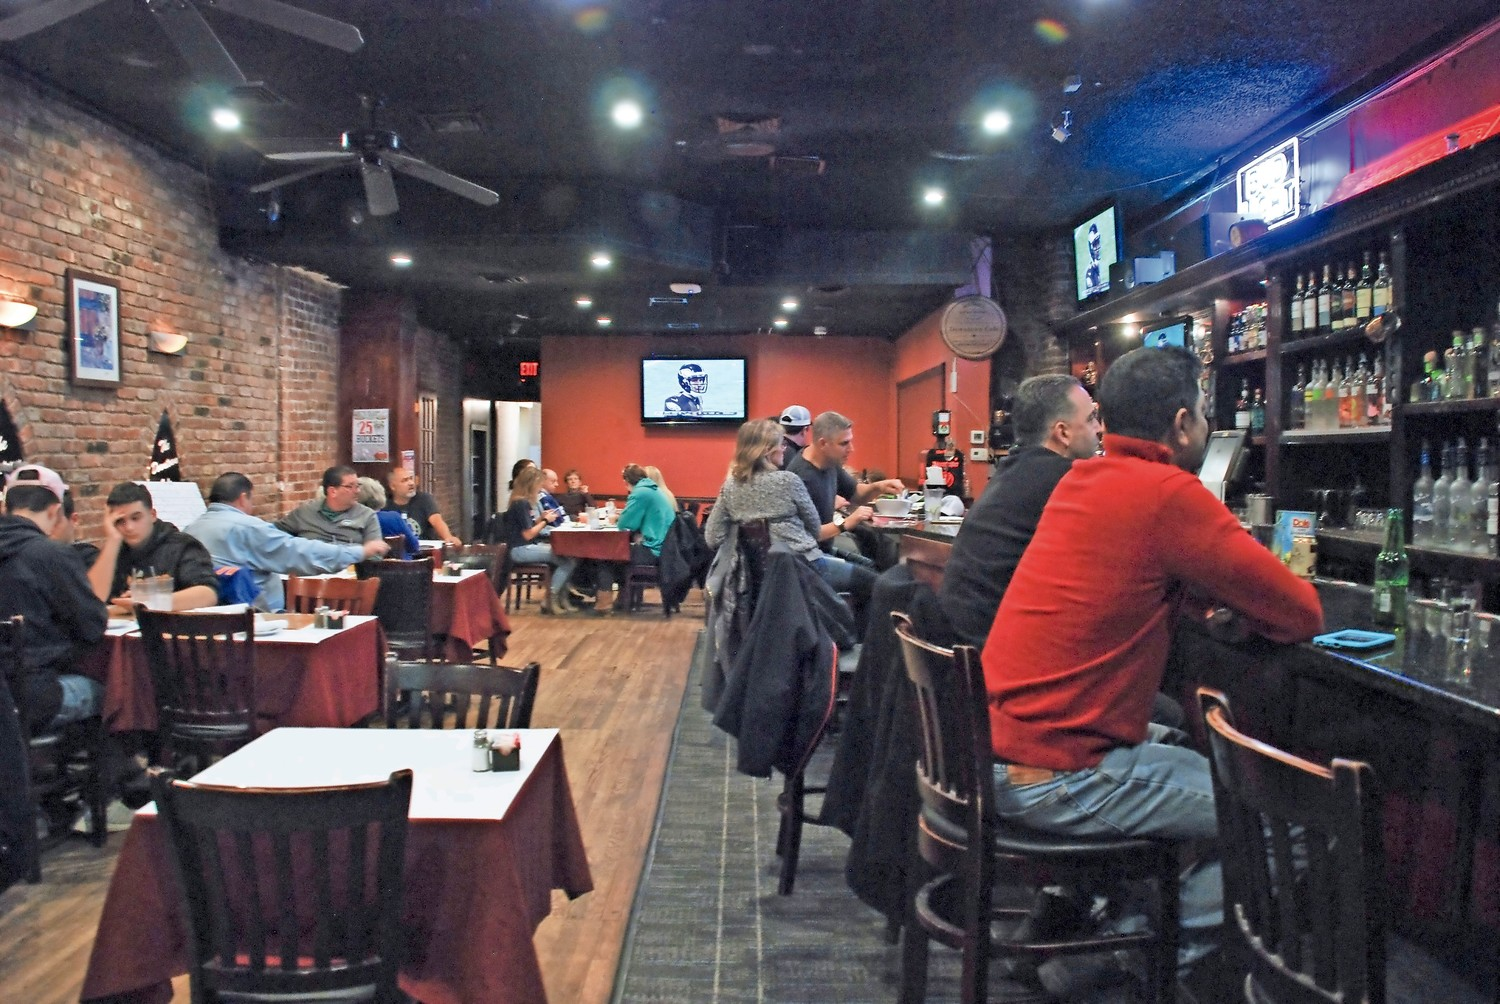 Revved up residents gathered at The Downtown Café in Glen Cove to watch the big game.